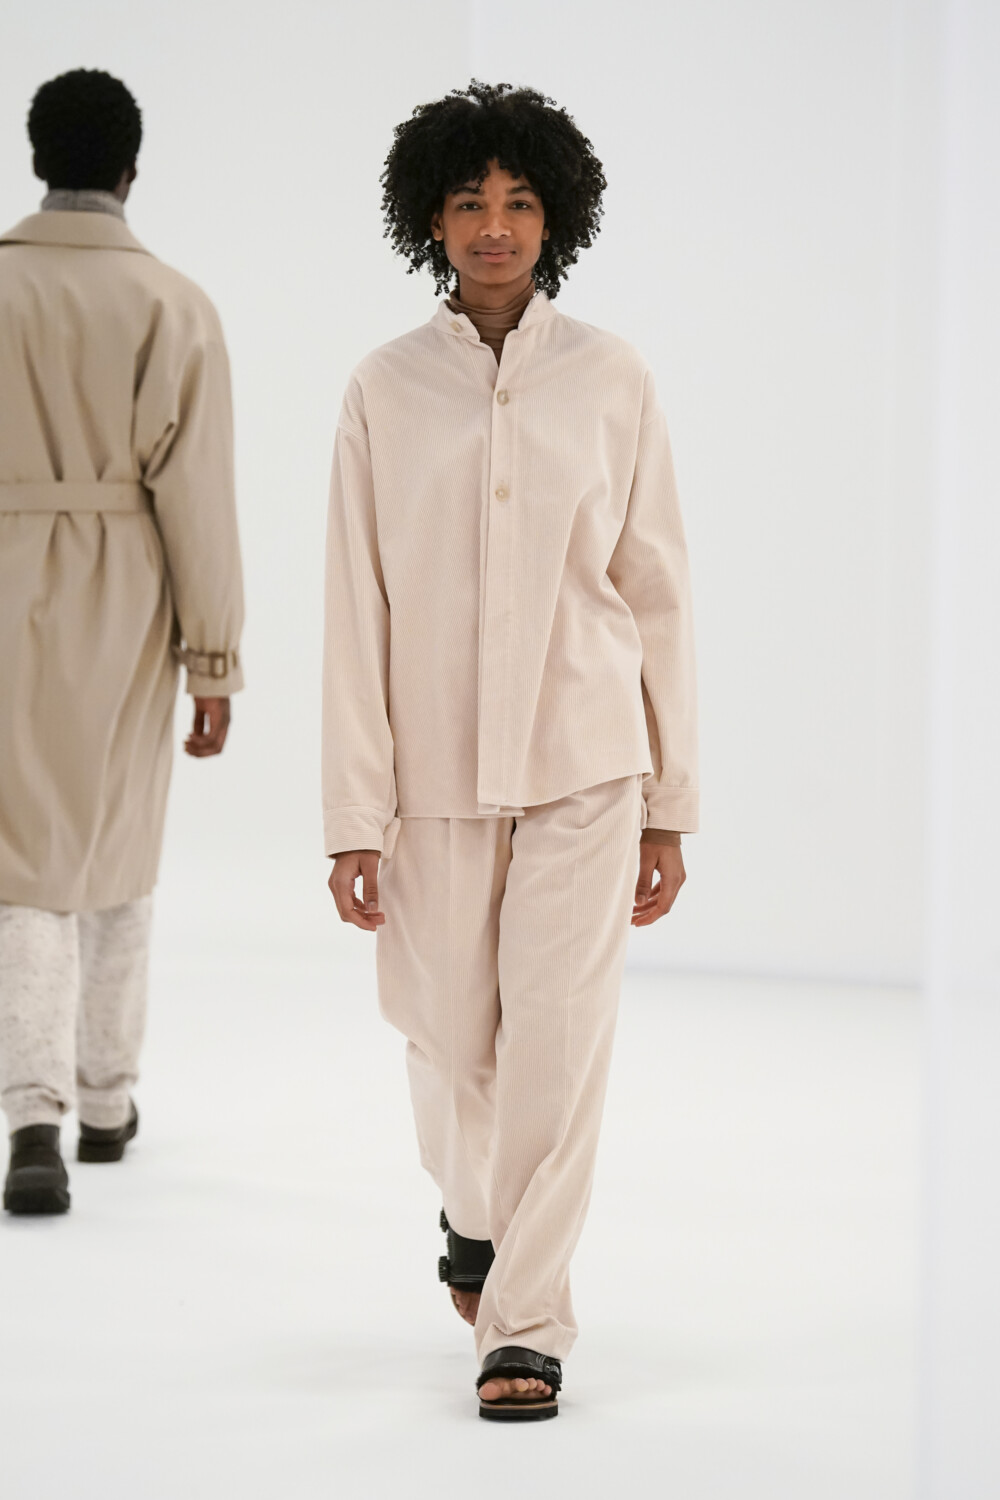 Auralee Women Men Fall Winter 2021 2022 Paris